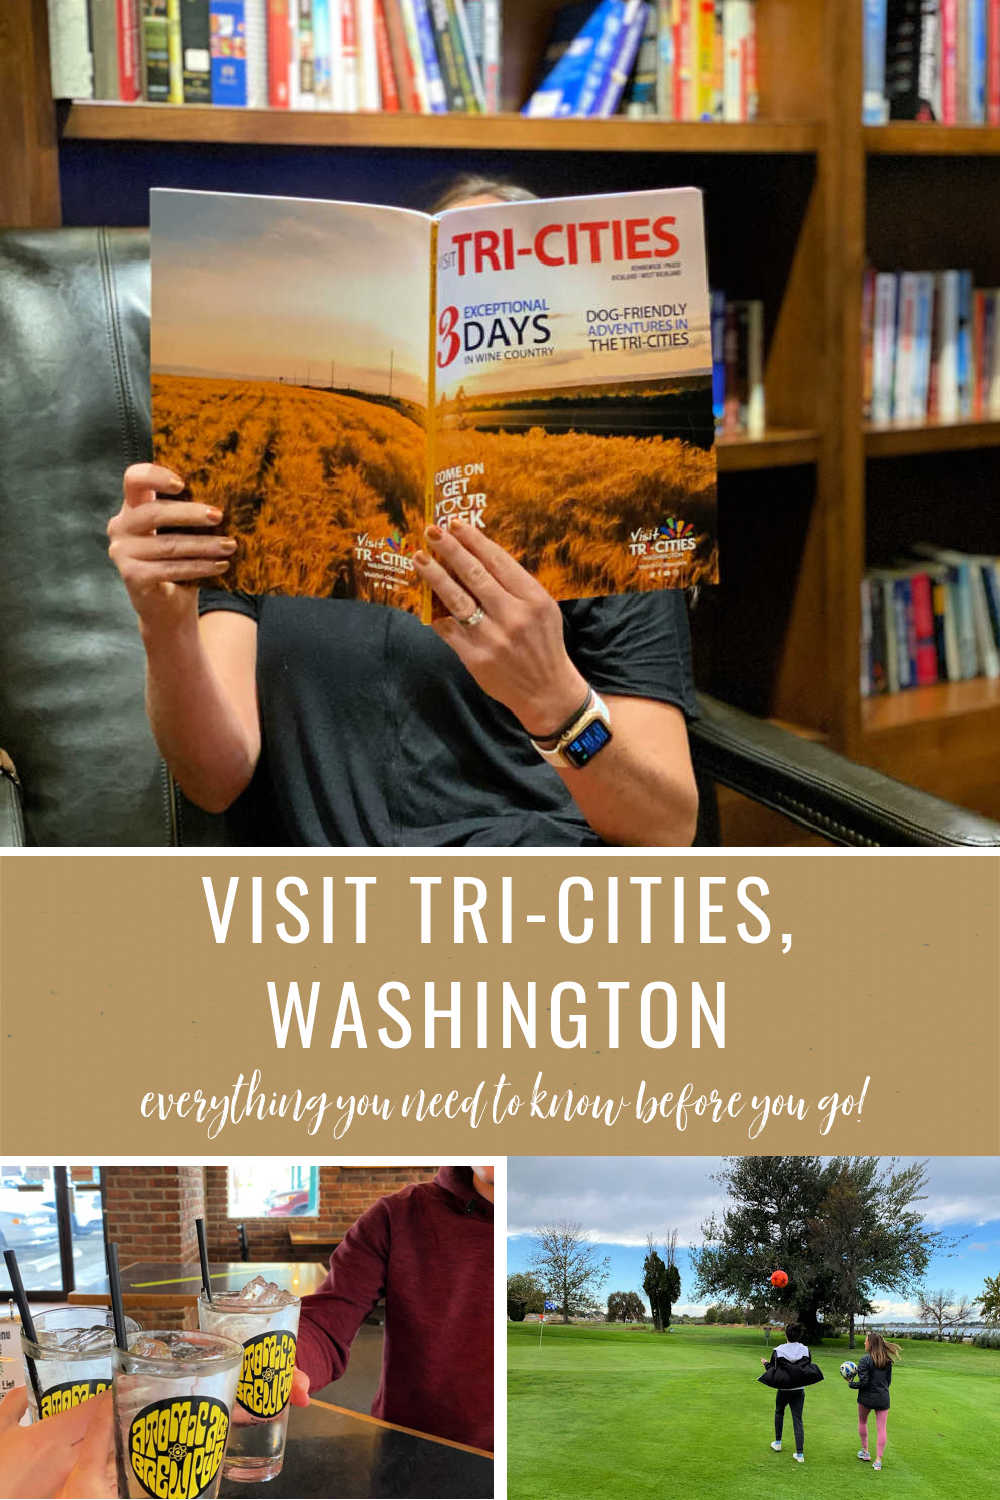 visit tri-cities, washington